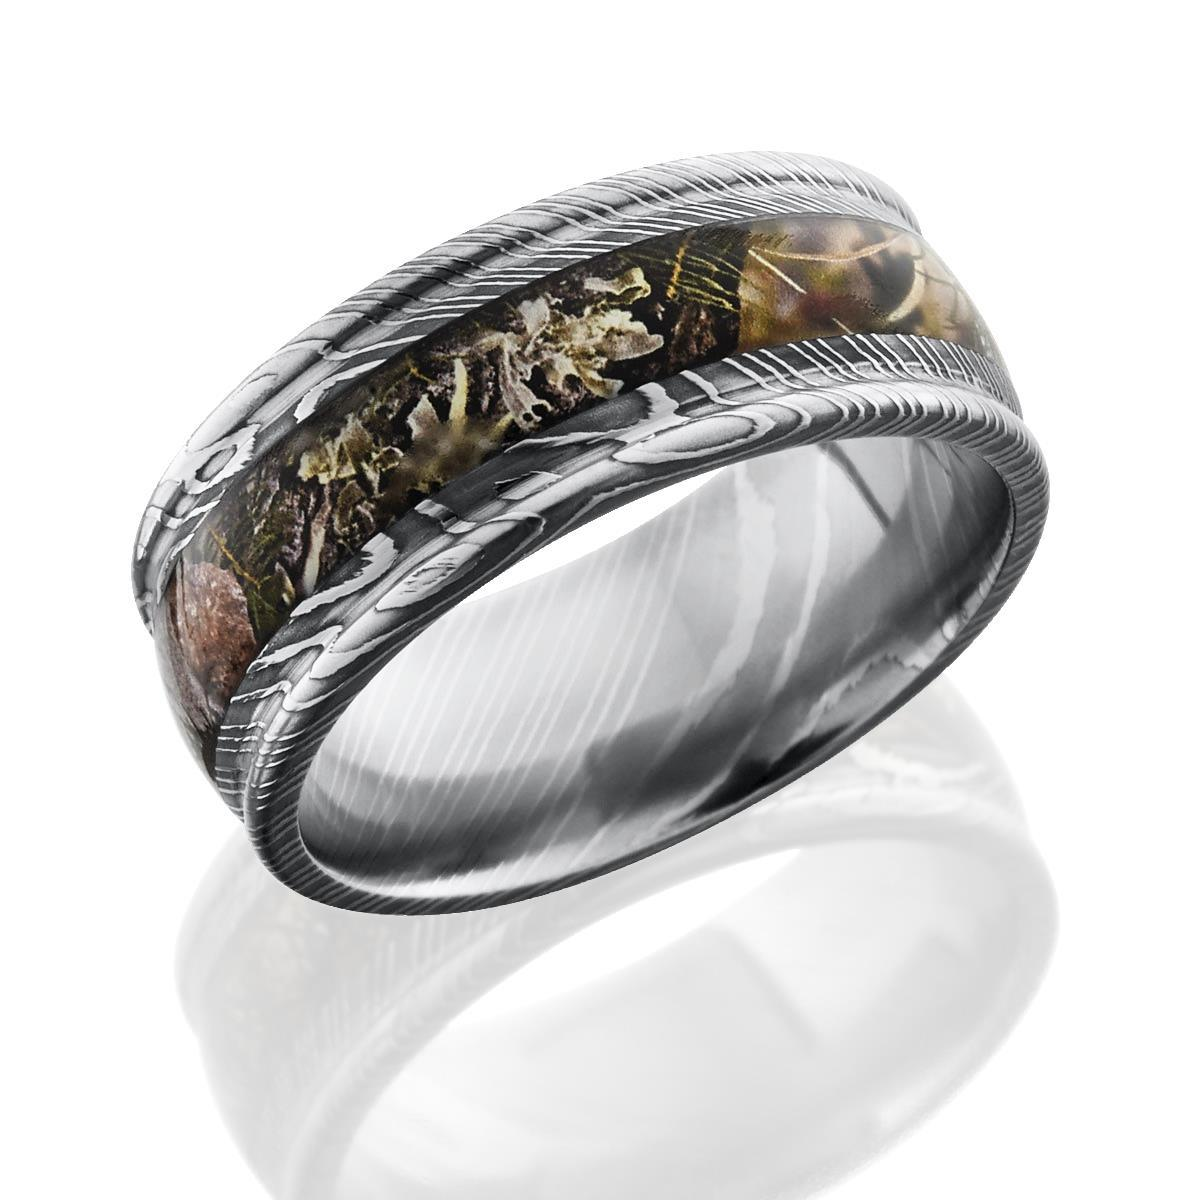 ring surface titanium leafy product wedding camo rings wood main flat bands